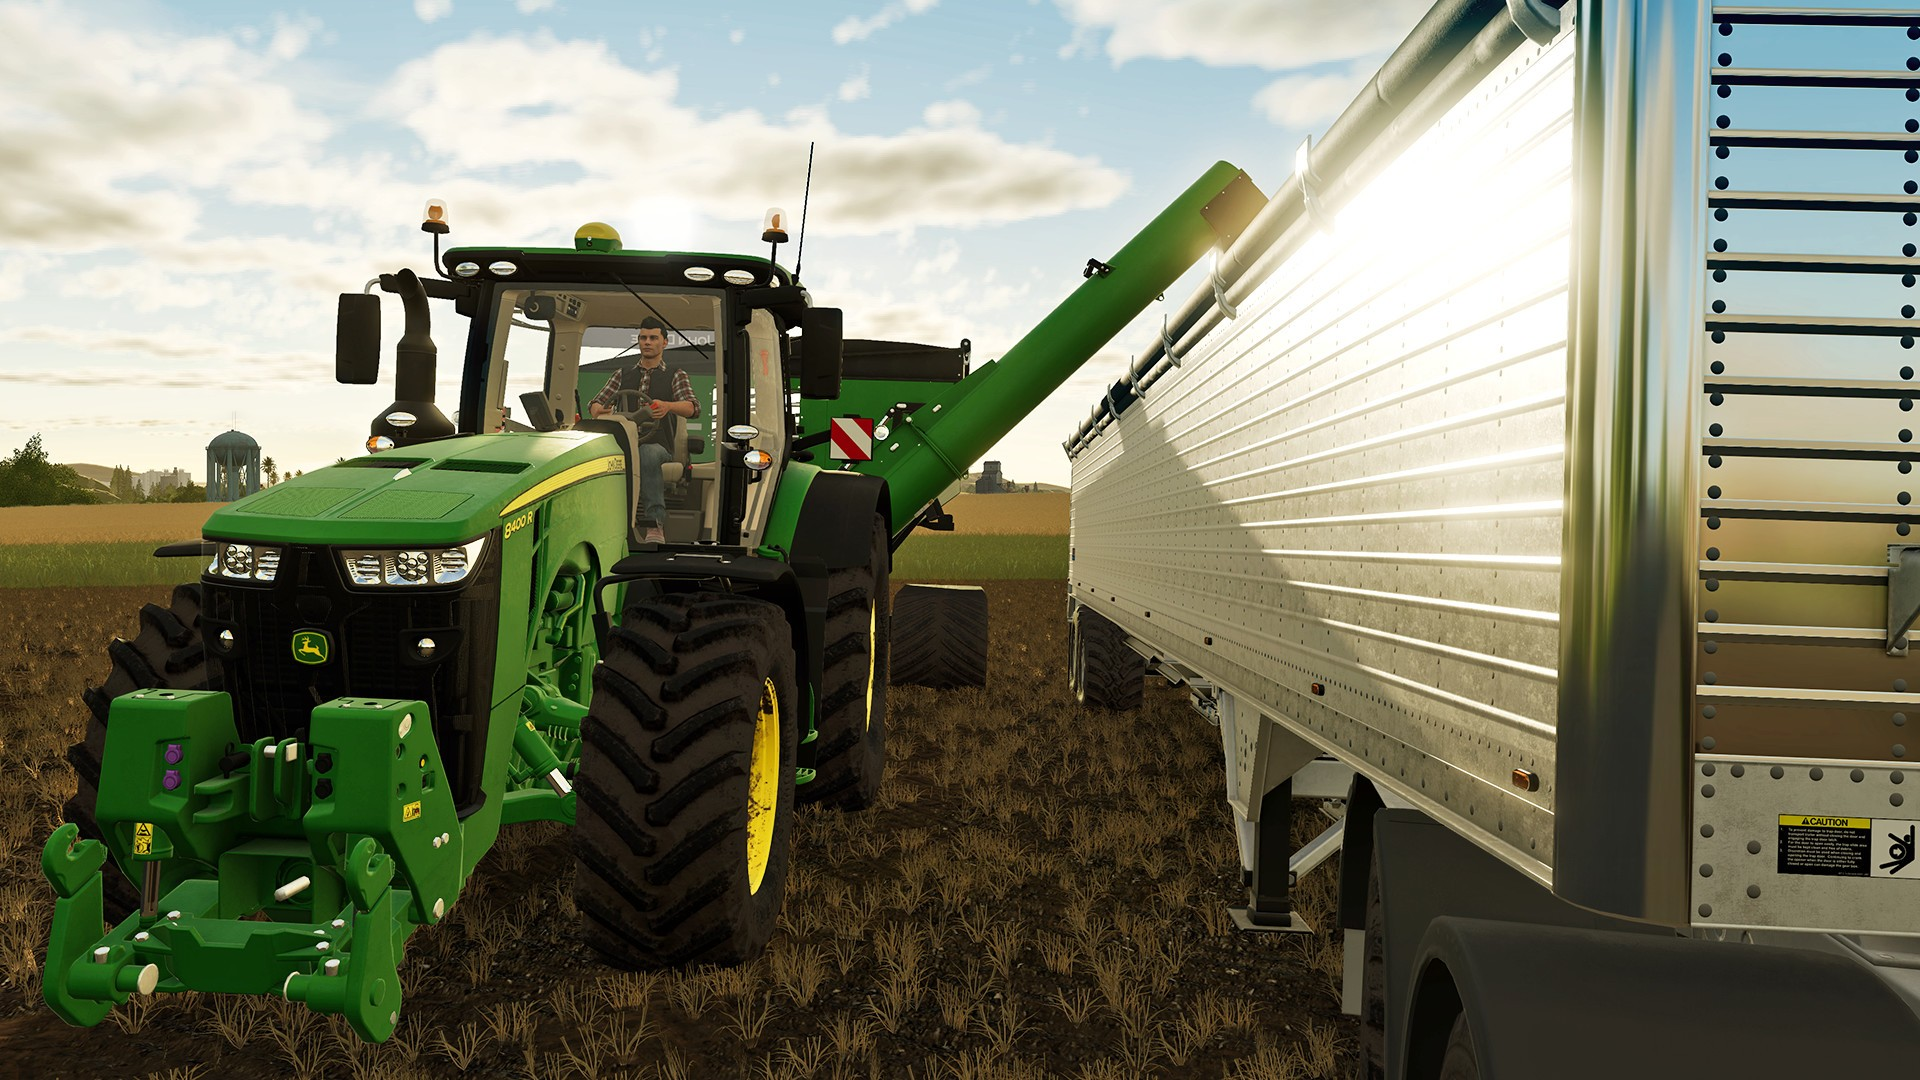 Farming simulator19: all about this amazing game